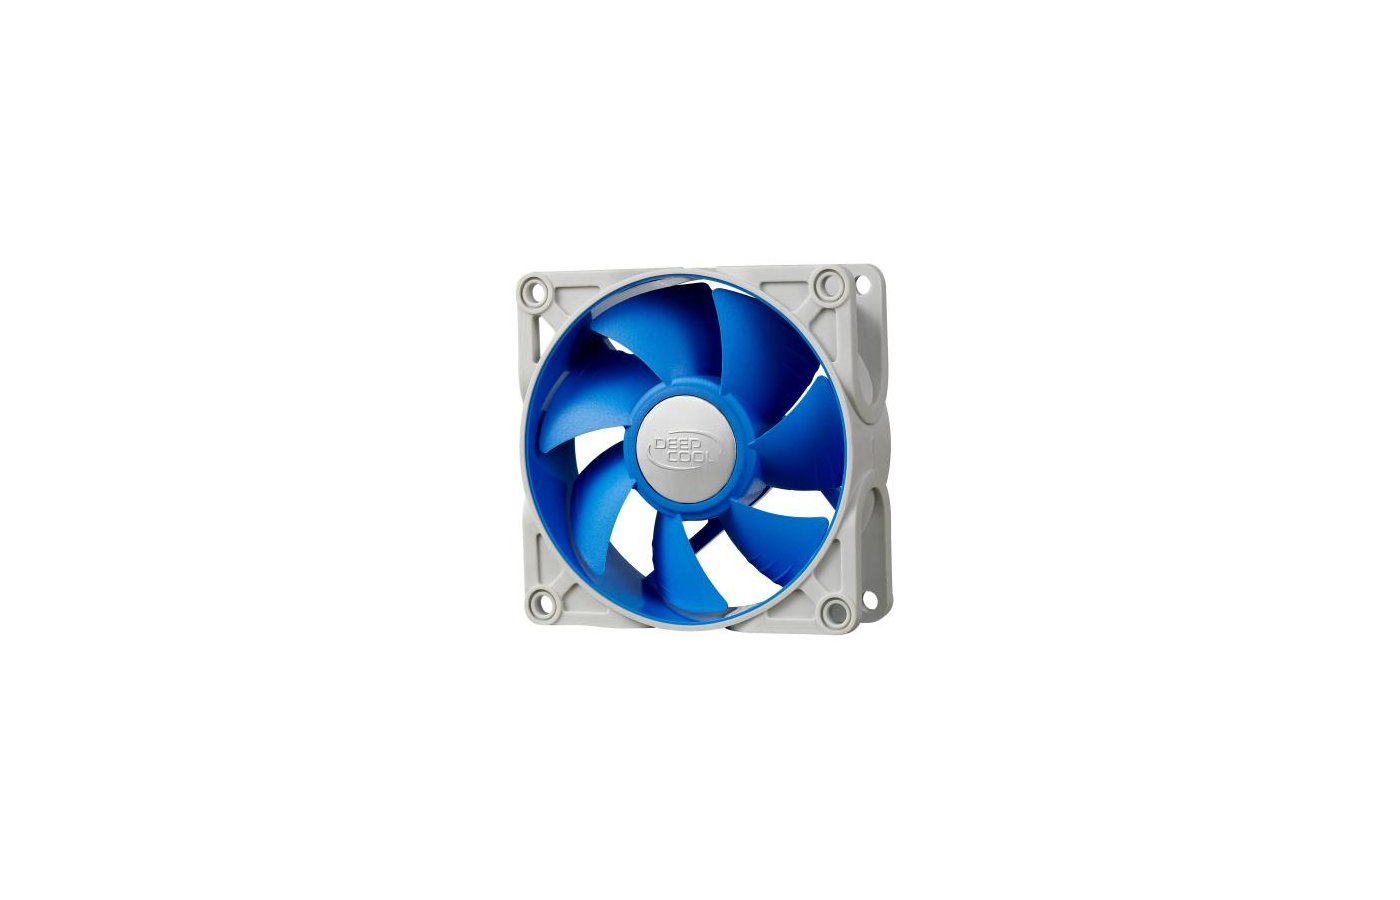 Охлаждение Deepcool UF 80 80x80x25 4pin 18-23dB 900-2200rpm 111g anti-vibration для корпуса